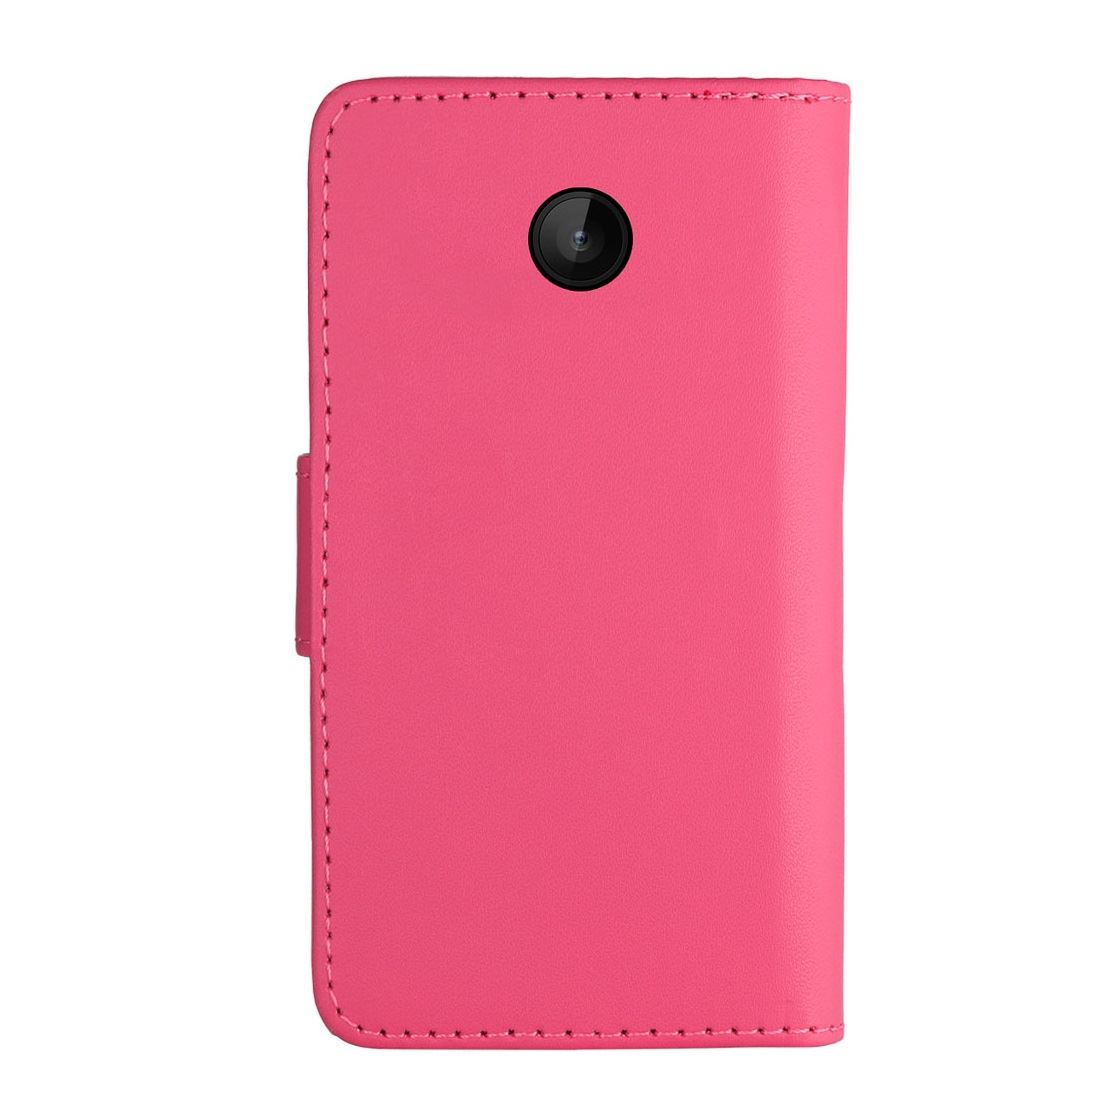 32nd-Book-Series-Synthetic-PU-Leather-Flip-Wallet-Case-Cover-Nokia-Lumia-620 thumbnail 17